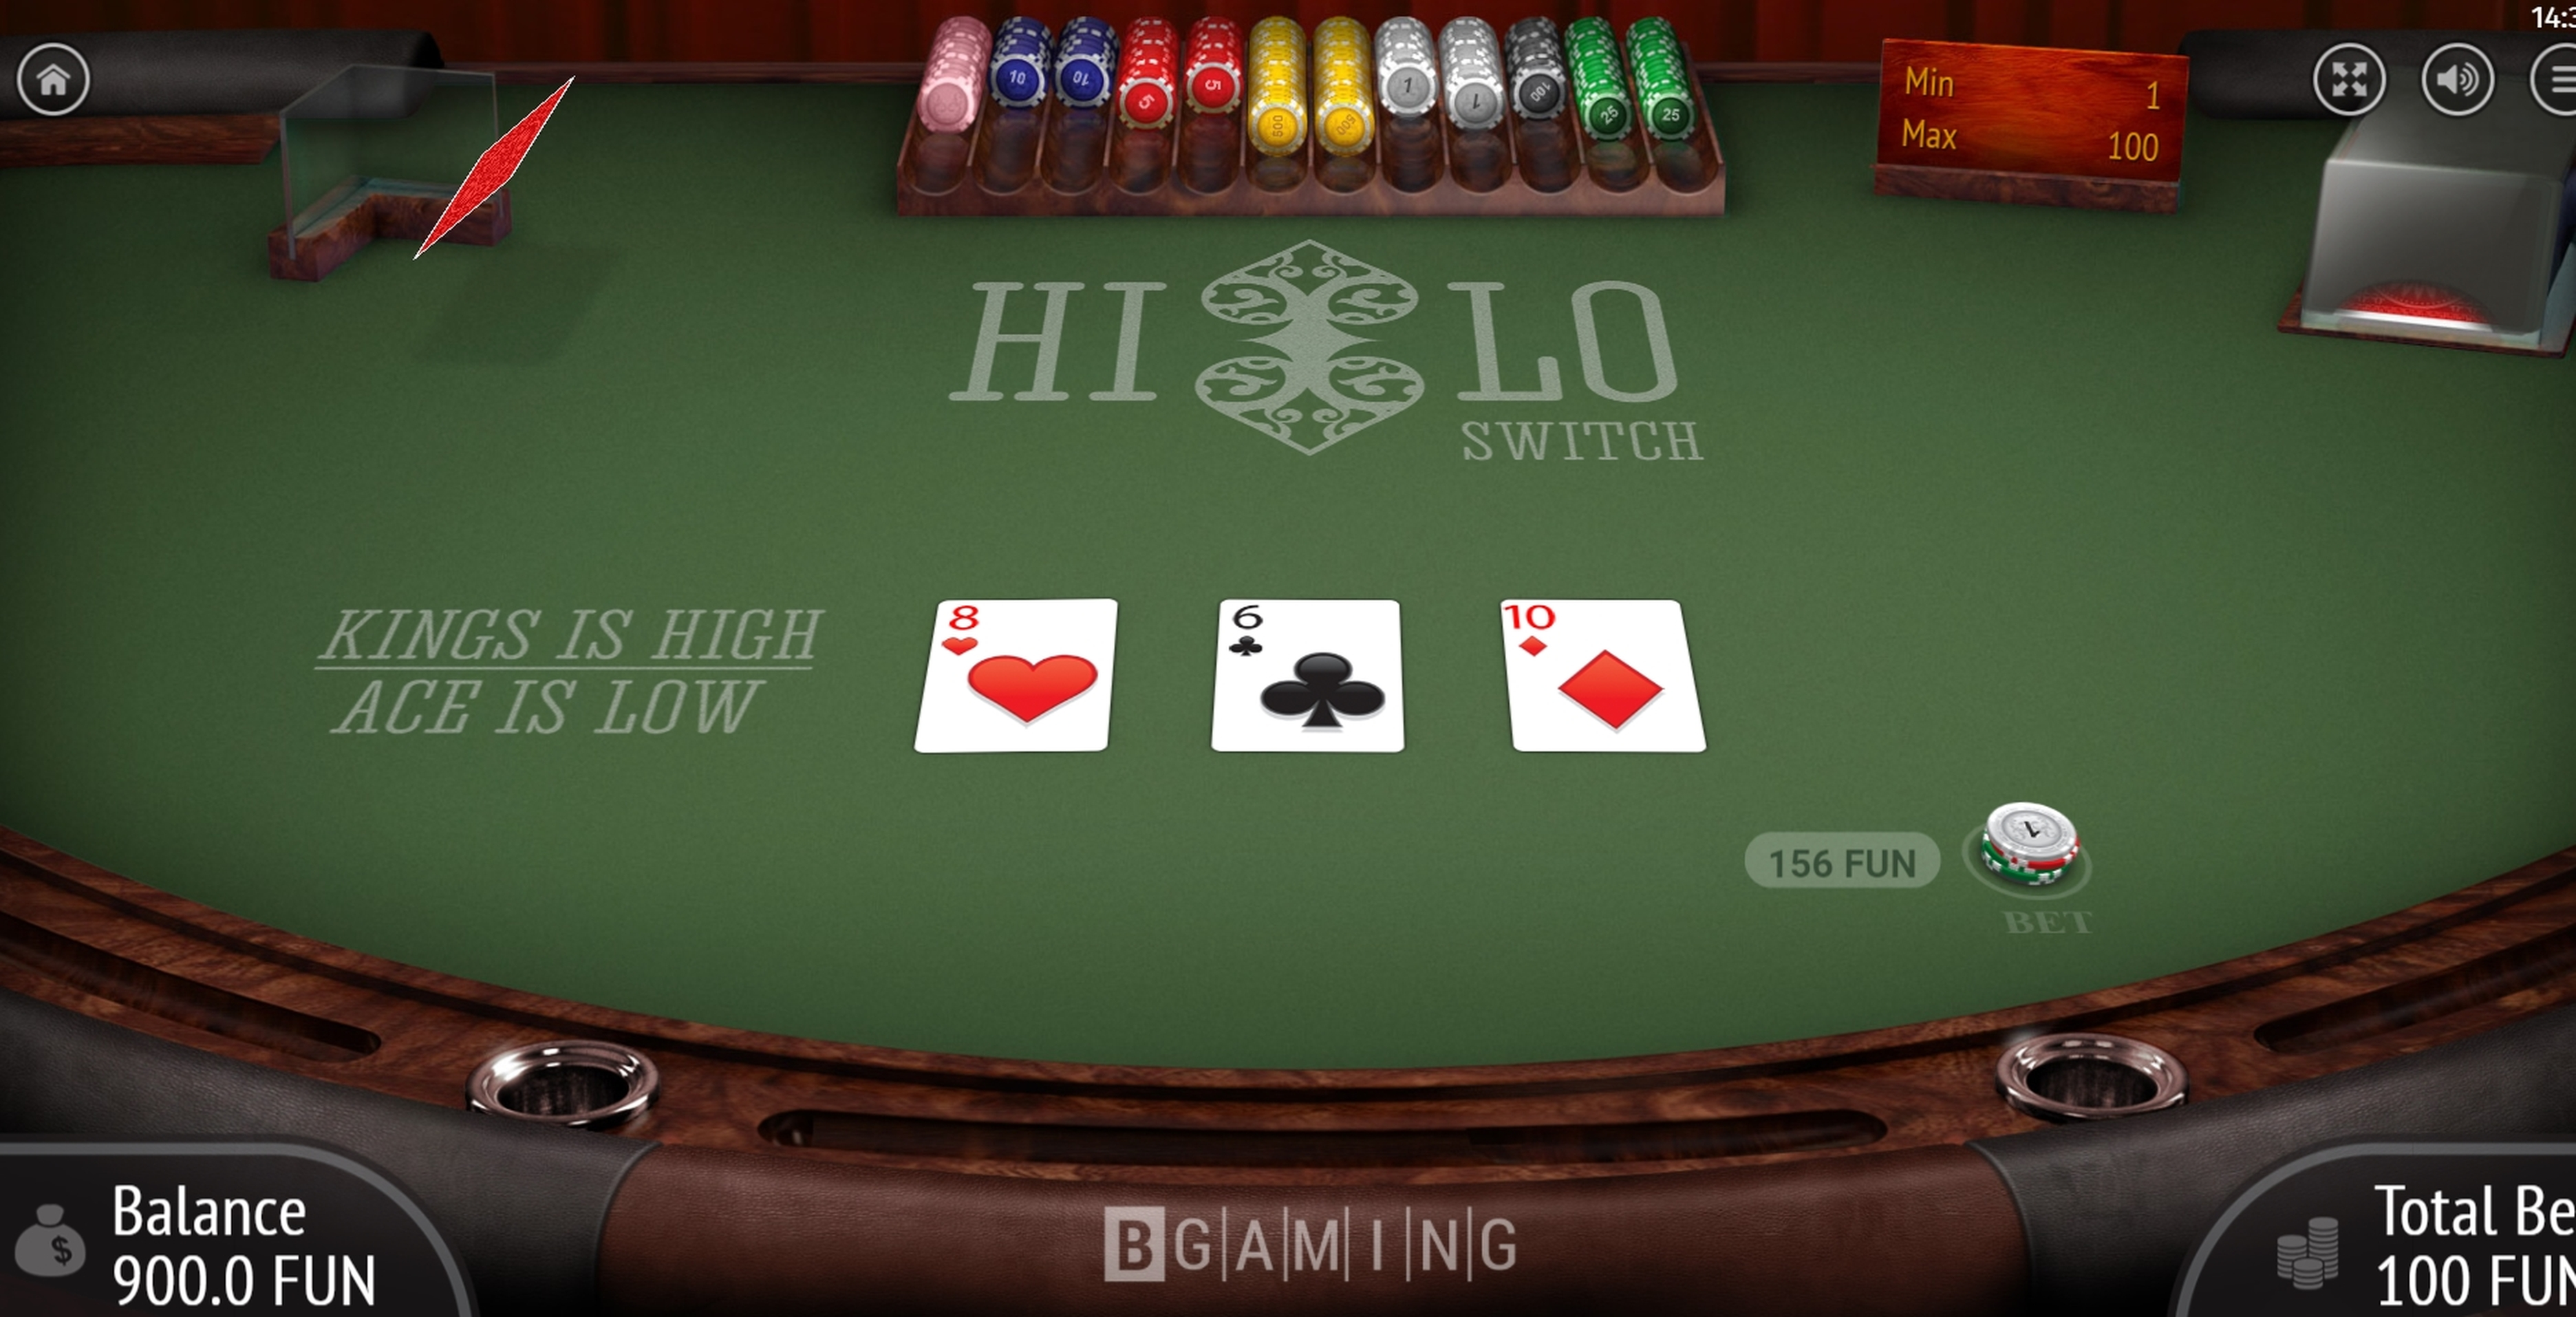 Win Money in Hi Lo Switch Free Slot Game by BGAMING